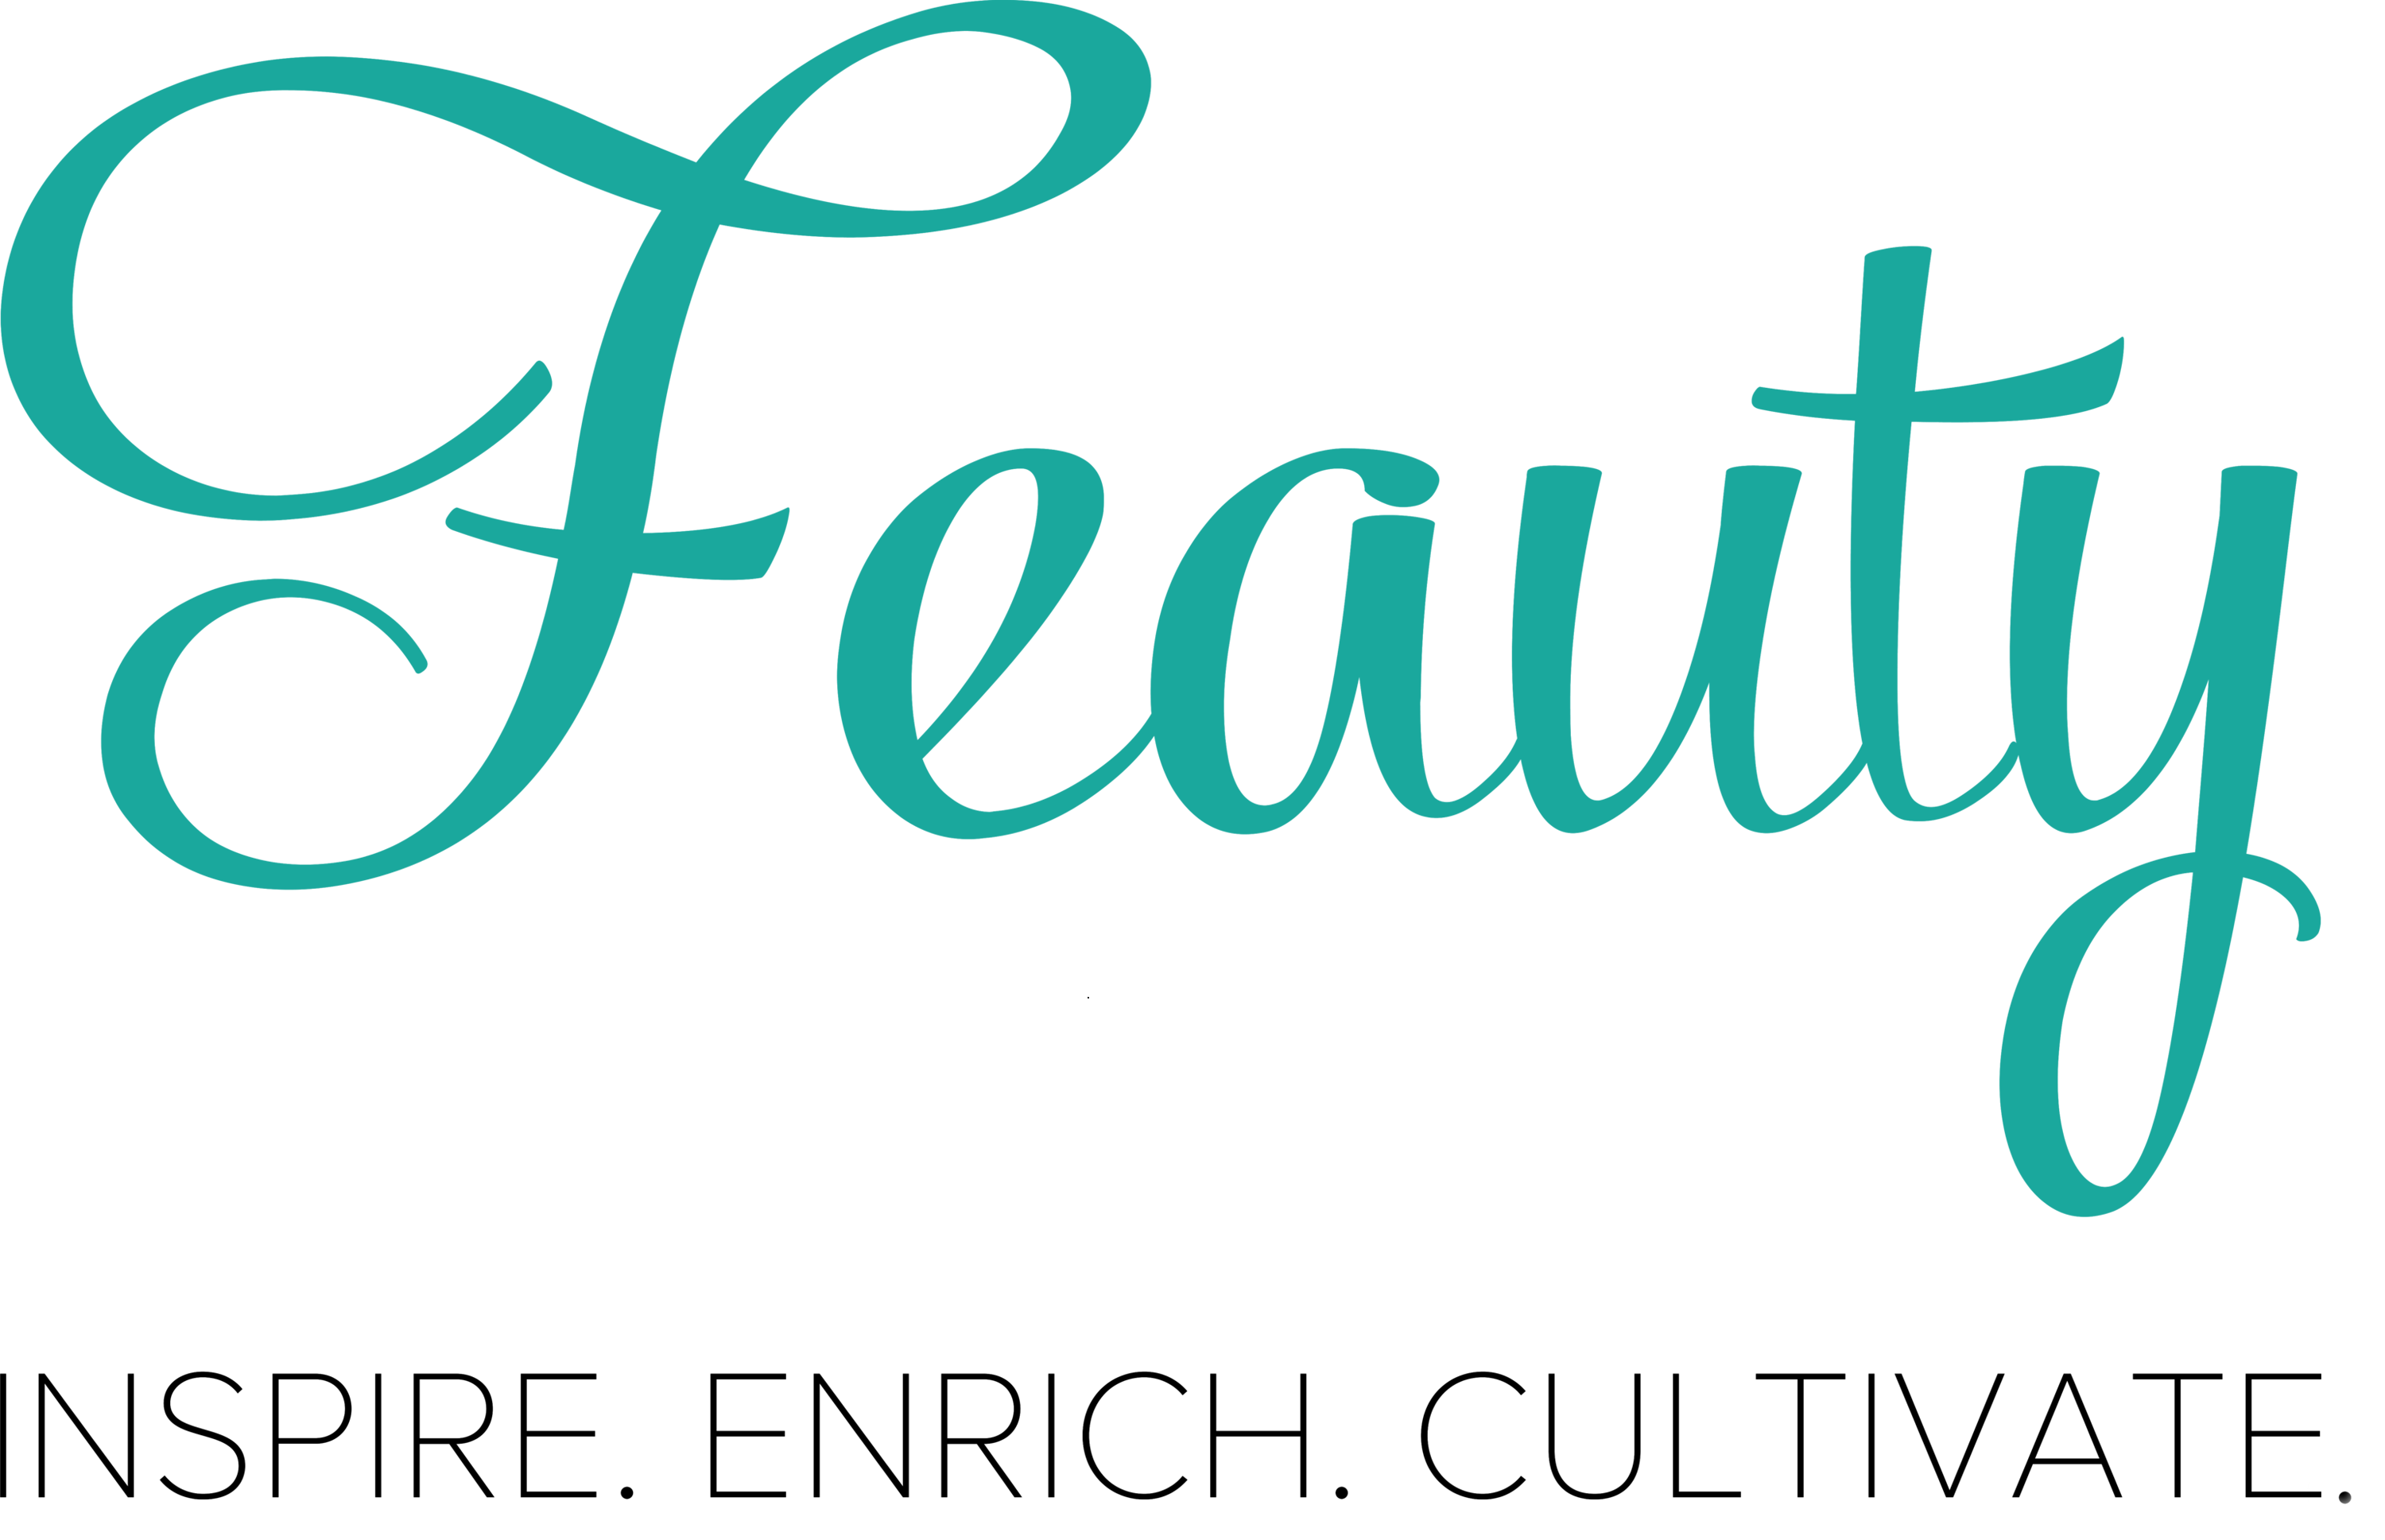 Image result for feauty logo